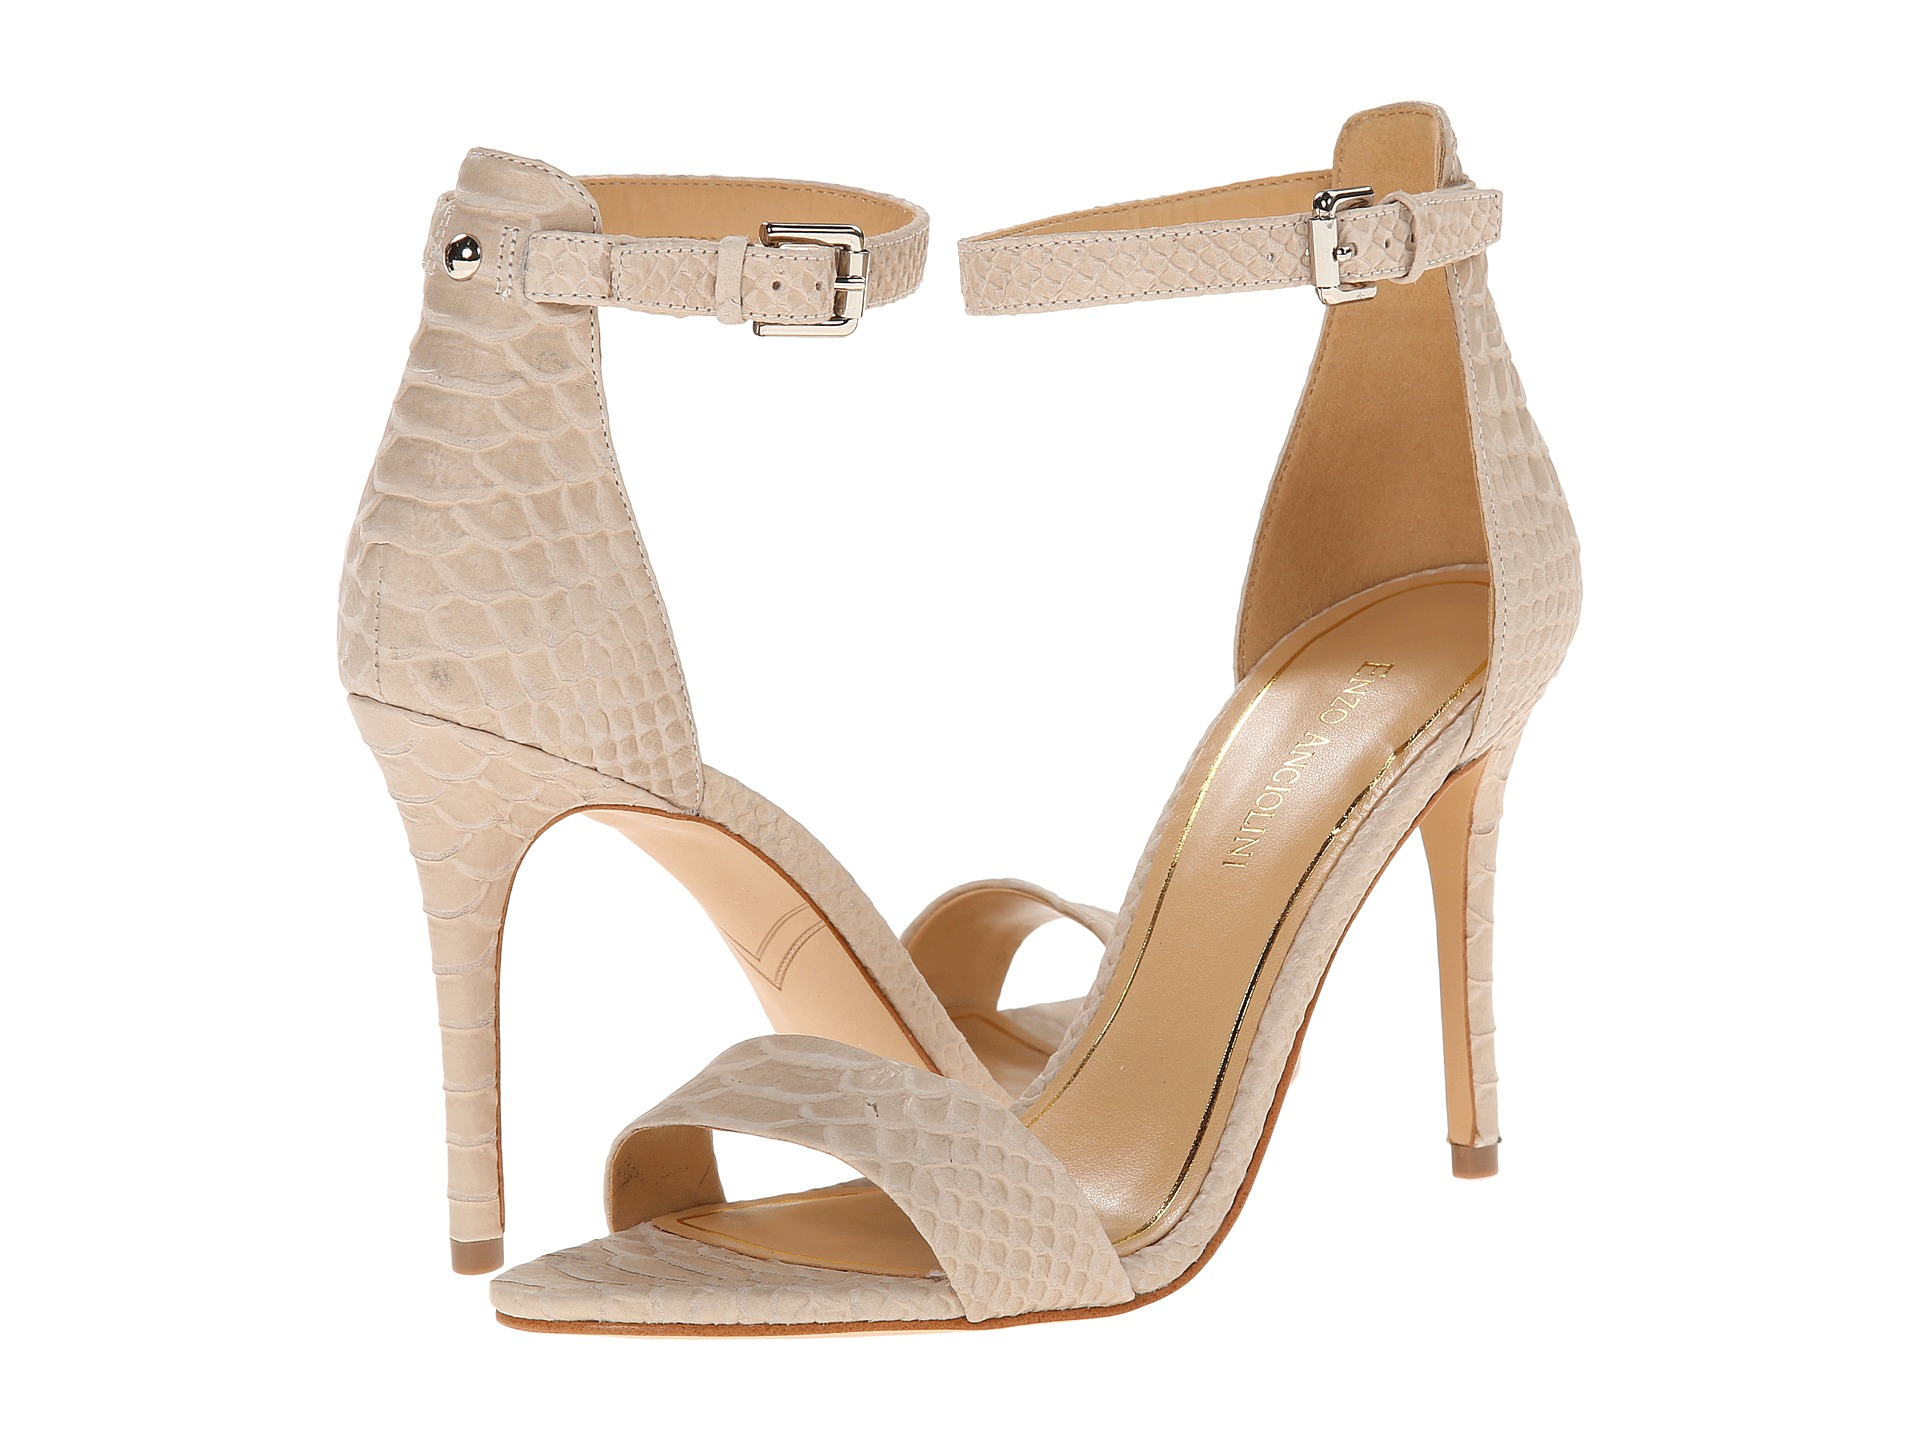 Lyst - Enzo Angiolini Manna in Natural 55711e55a